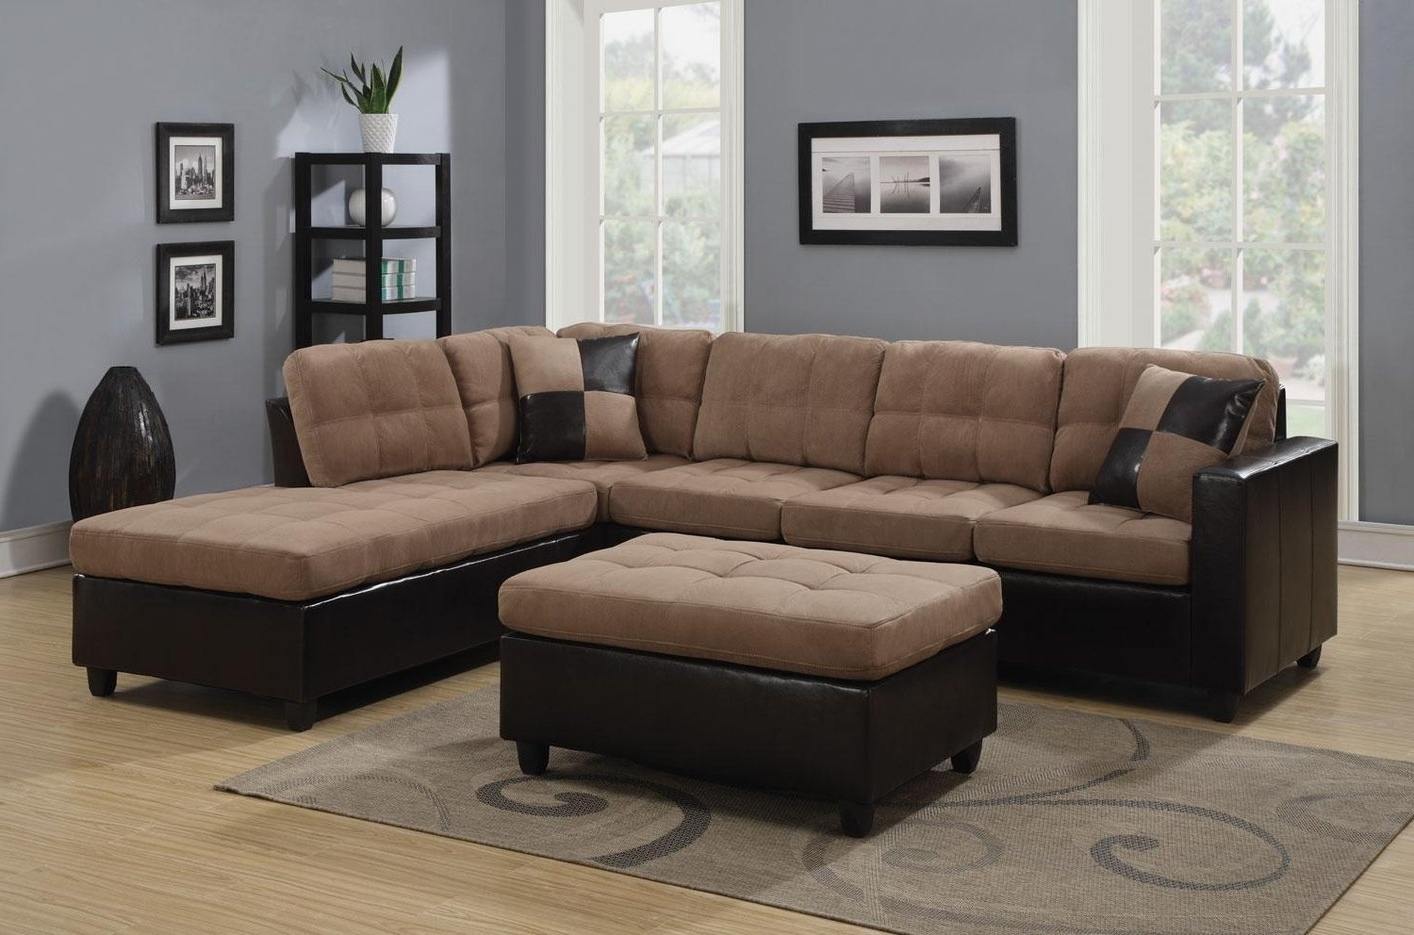 Beige Sectionals With Chaise Within Widely Used Sectional Sofa Design: Amazing Beige Sectional Sofas Beige Leather (View 9 of 15)